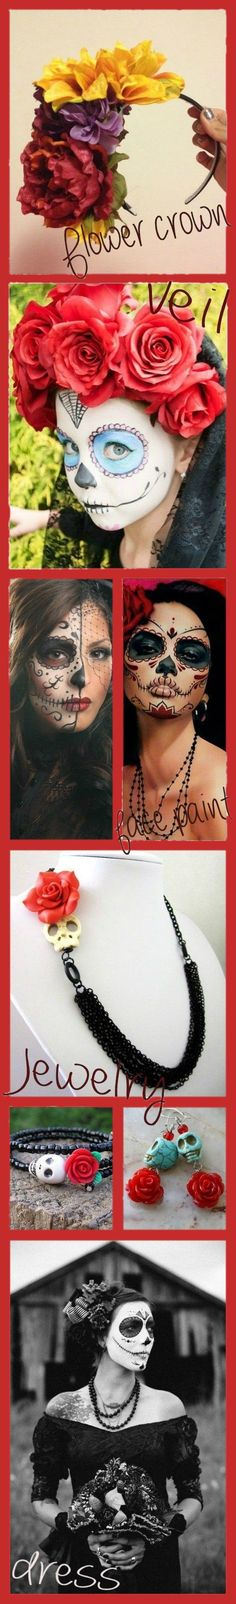 My inspiration for putting my Dia de los Muertos outfit together. A Flower crown, a white veil, face paint, home made jewelry, a dark navy blue dress and tights